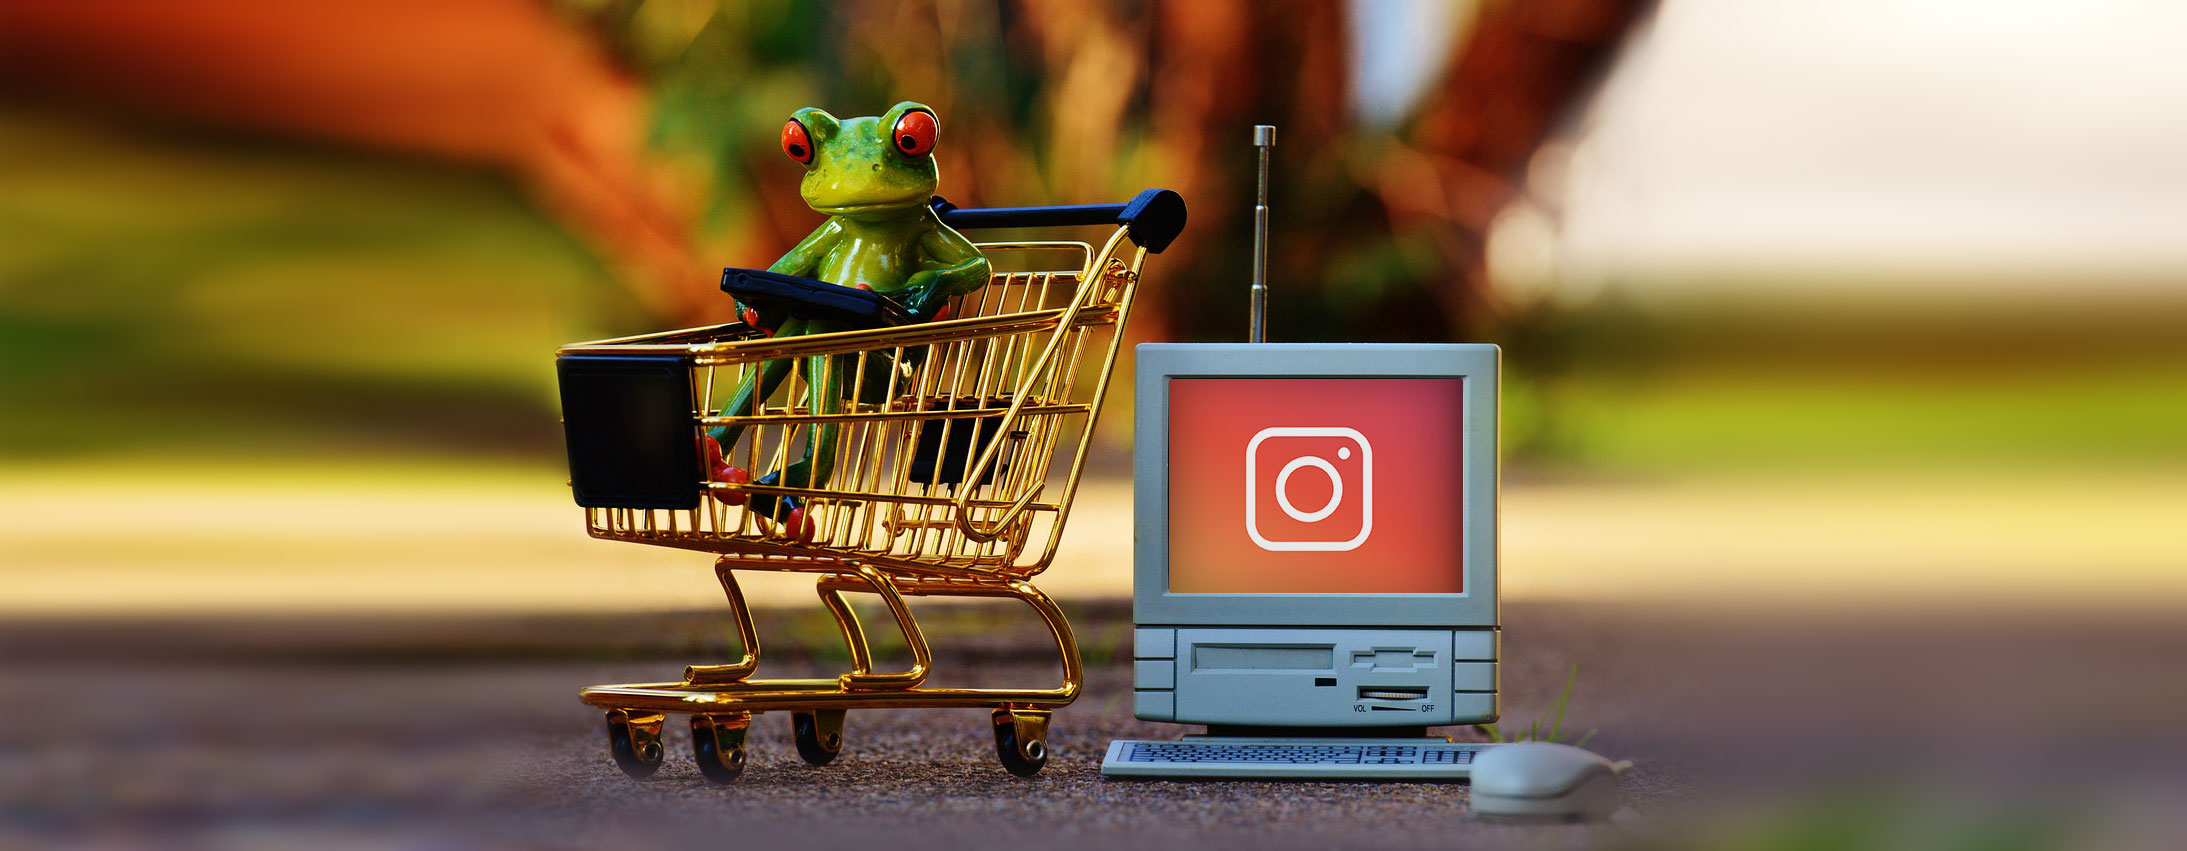 How To Set Up Shoppable Posts On Instagram Carney - how to set up shoppable posts on instagram